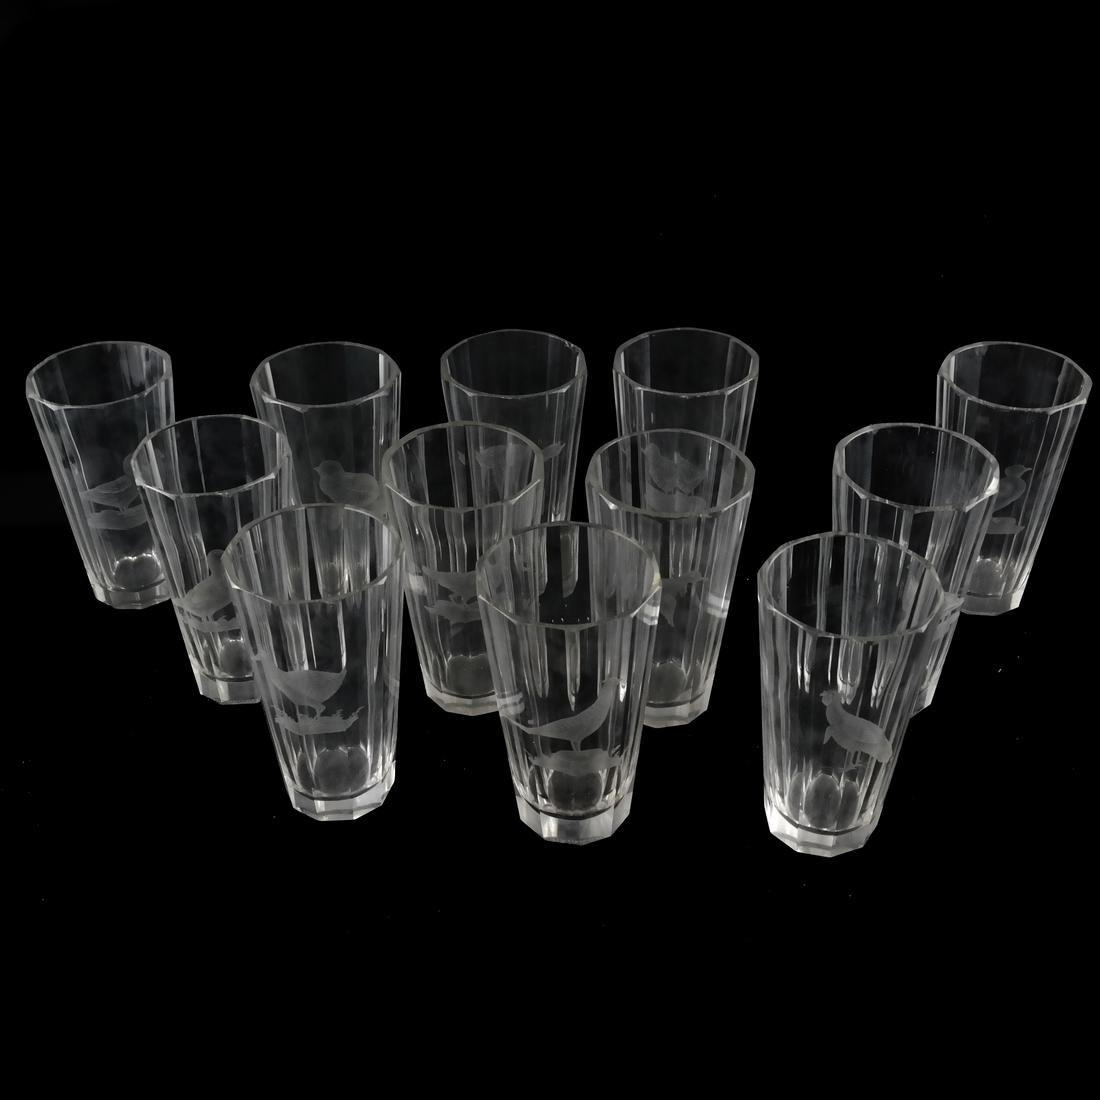 Set of 12 Water Glasses with Birds